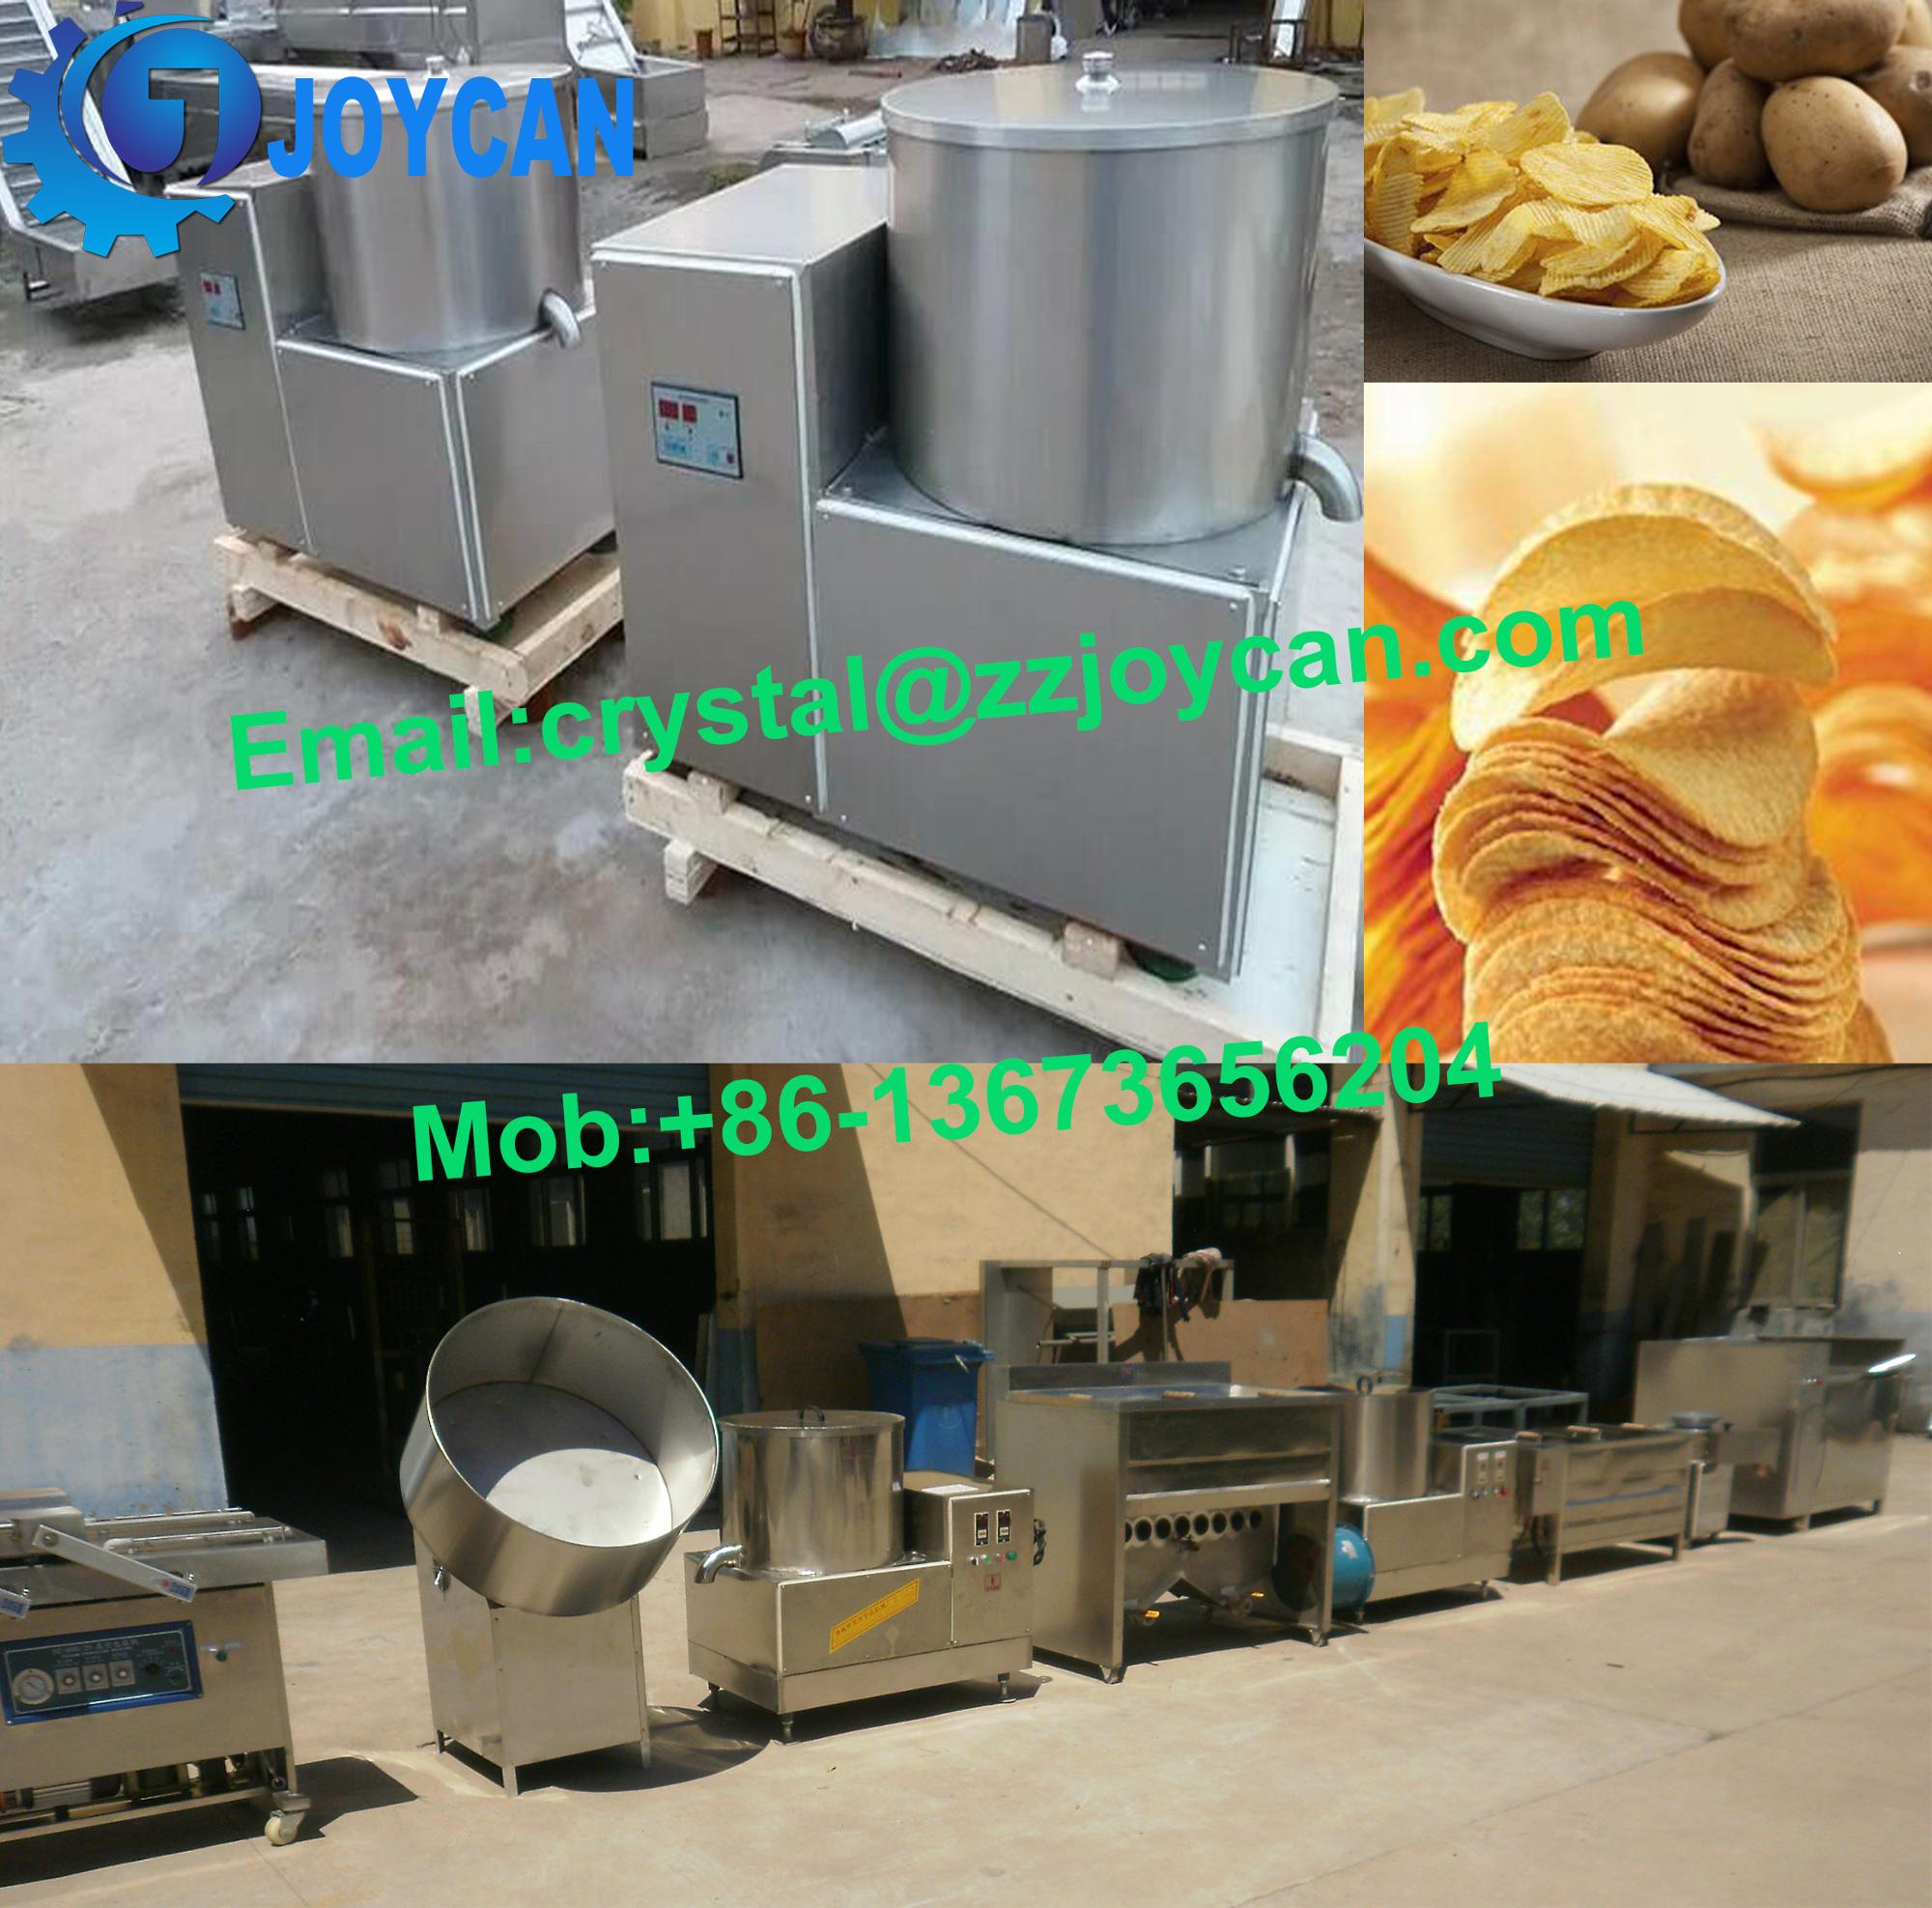 Good price lays sweet fresh Industrial automatic potato chips making machine for factory for sale